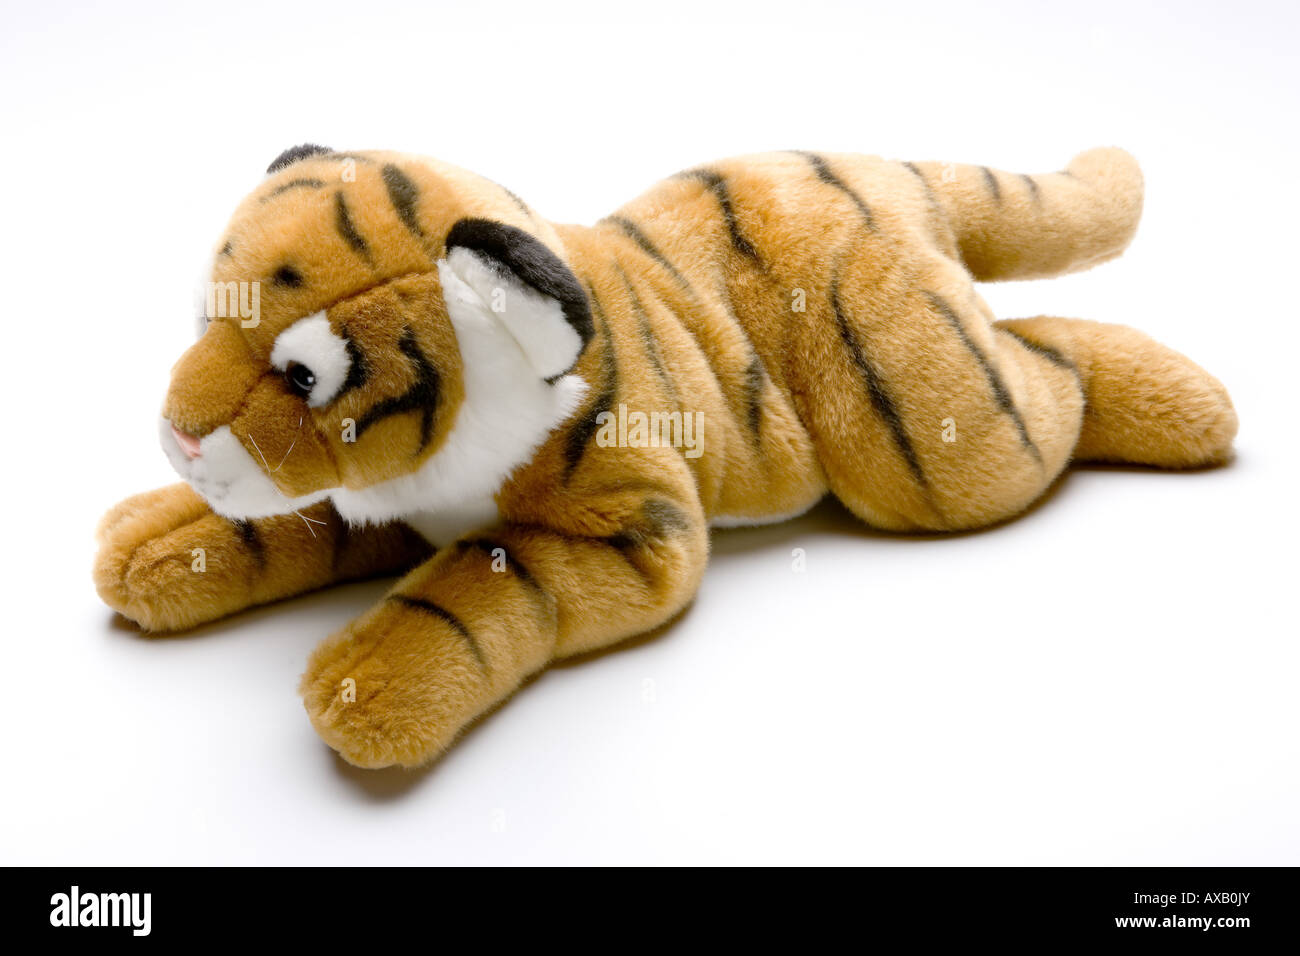 Stuffed Tiger Toy High Resolution Stock Photography And Images Alamy